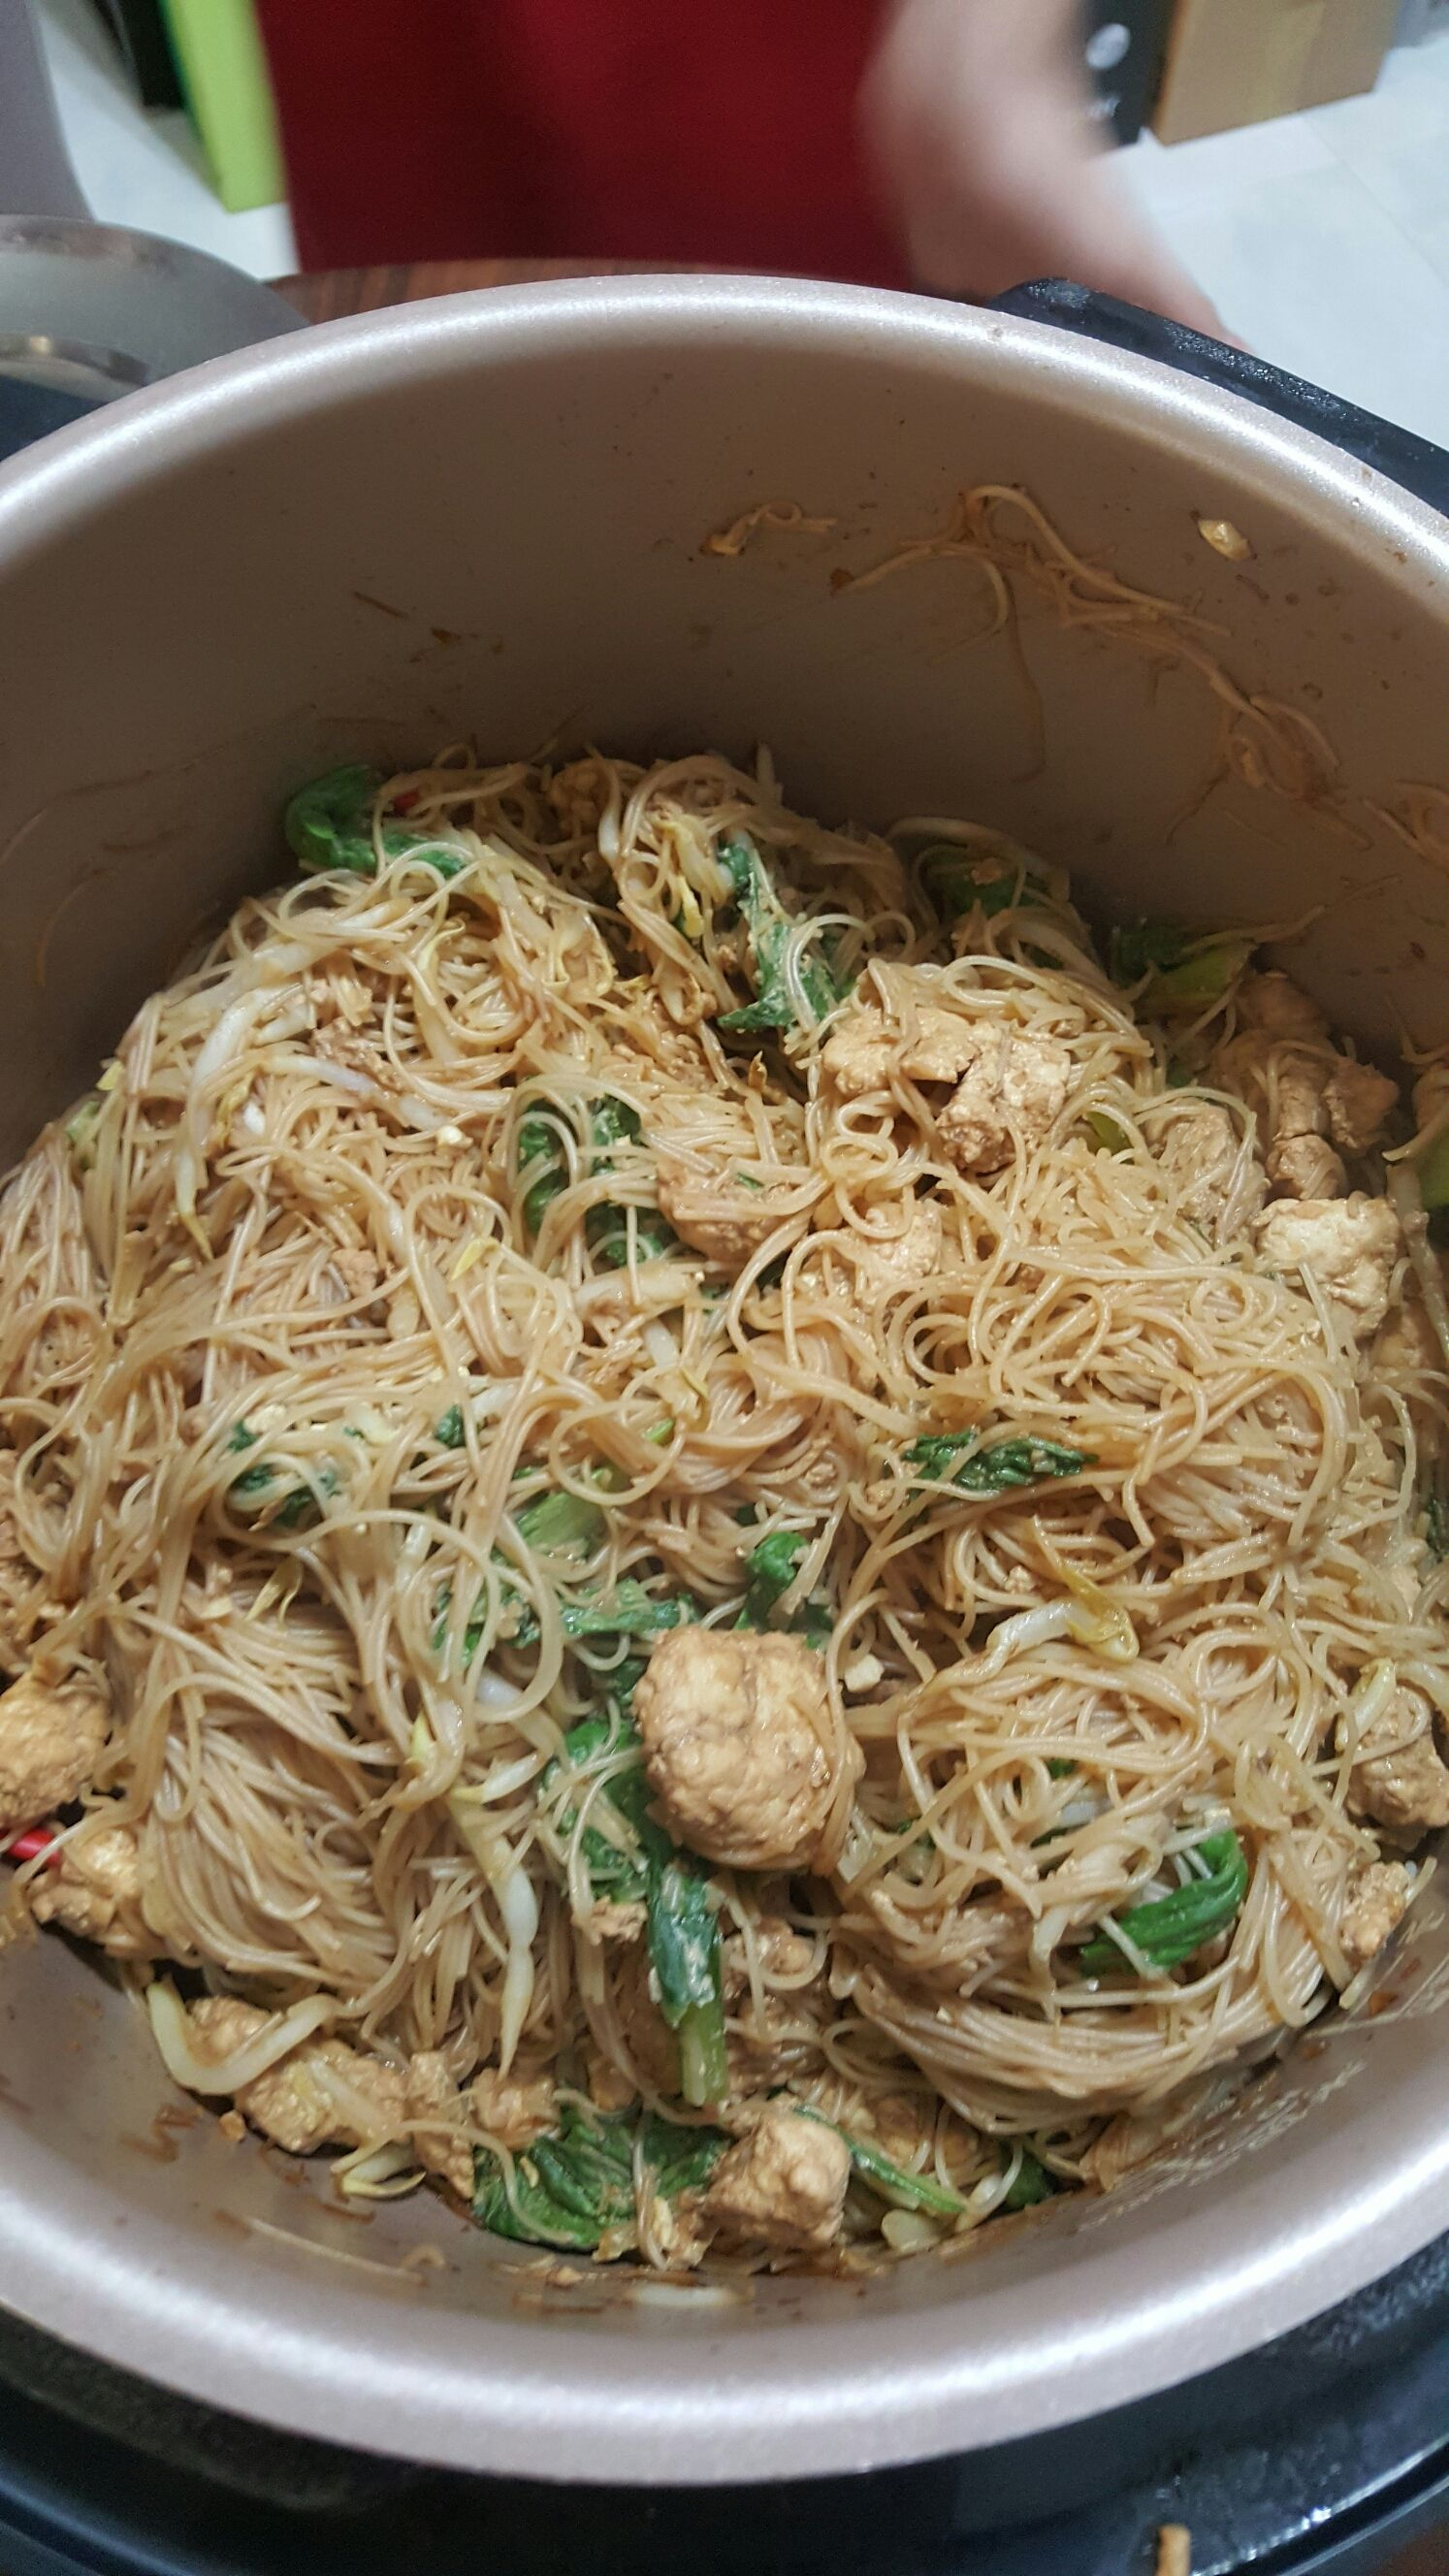 Fried bee hoon with philips pressure cooker 22 nov 2015 for Pressure cooker fish recipes